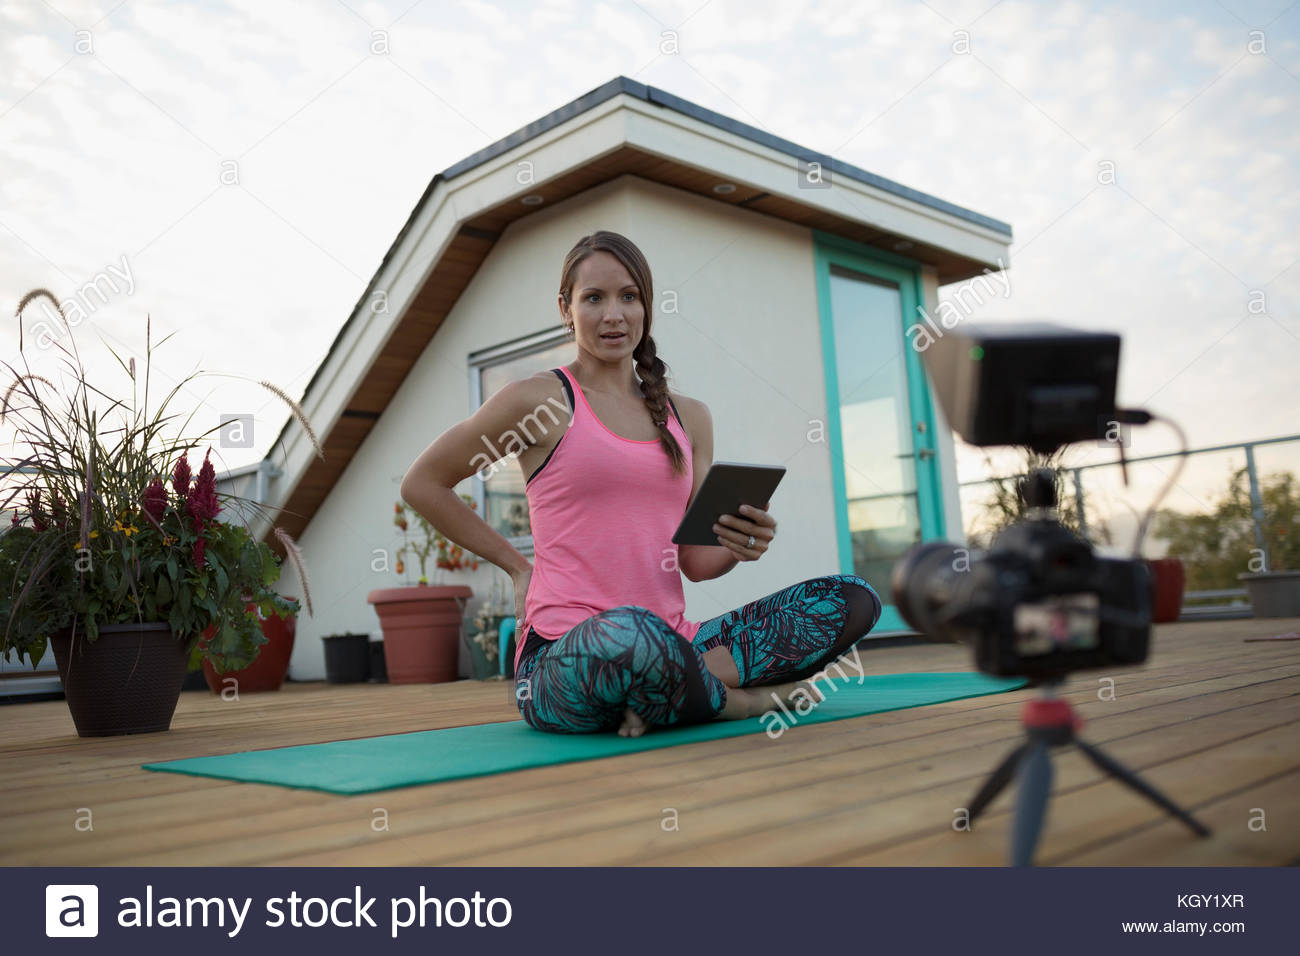 Female yoga instructor with digital tablet and video camera filming, vlogging on yoga mat on deck patio - Stock Image